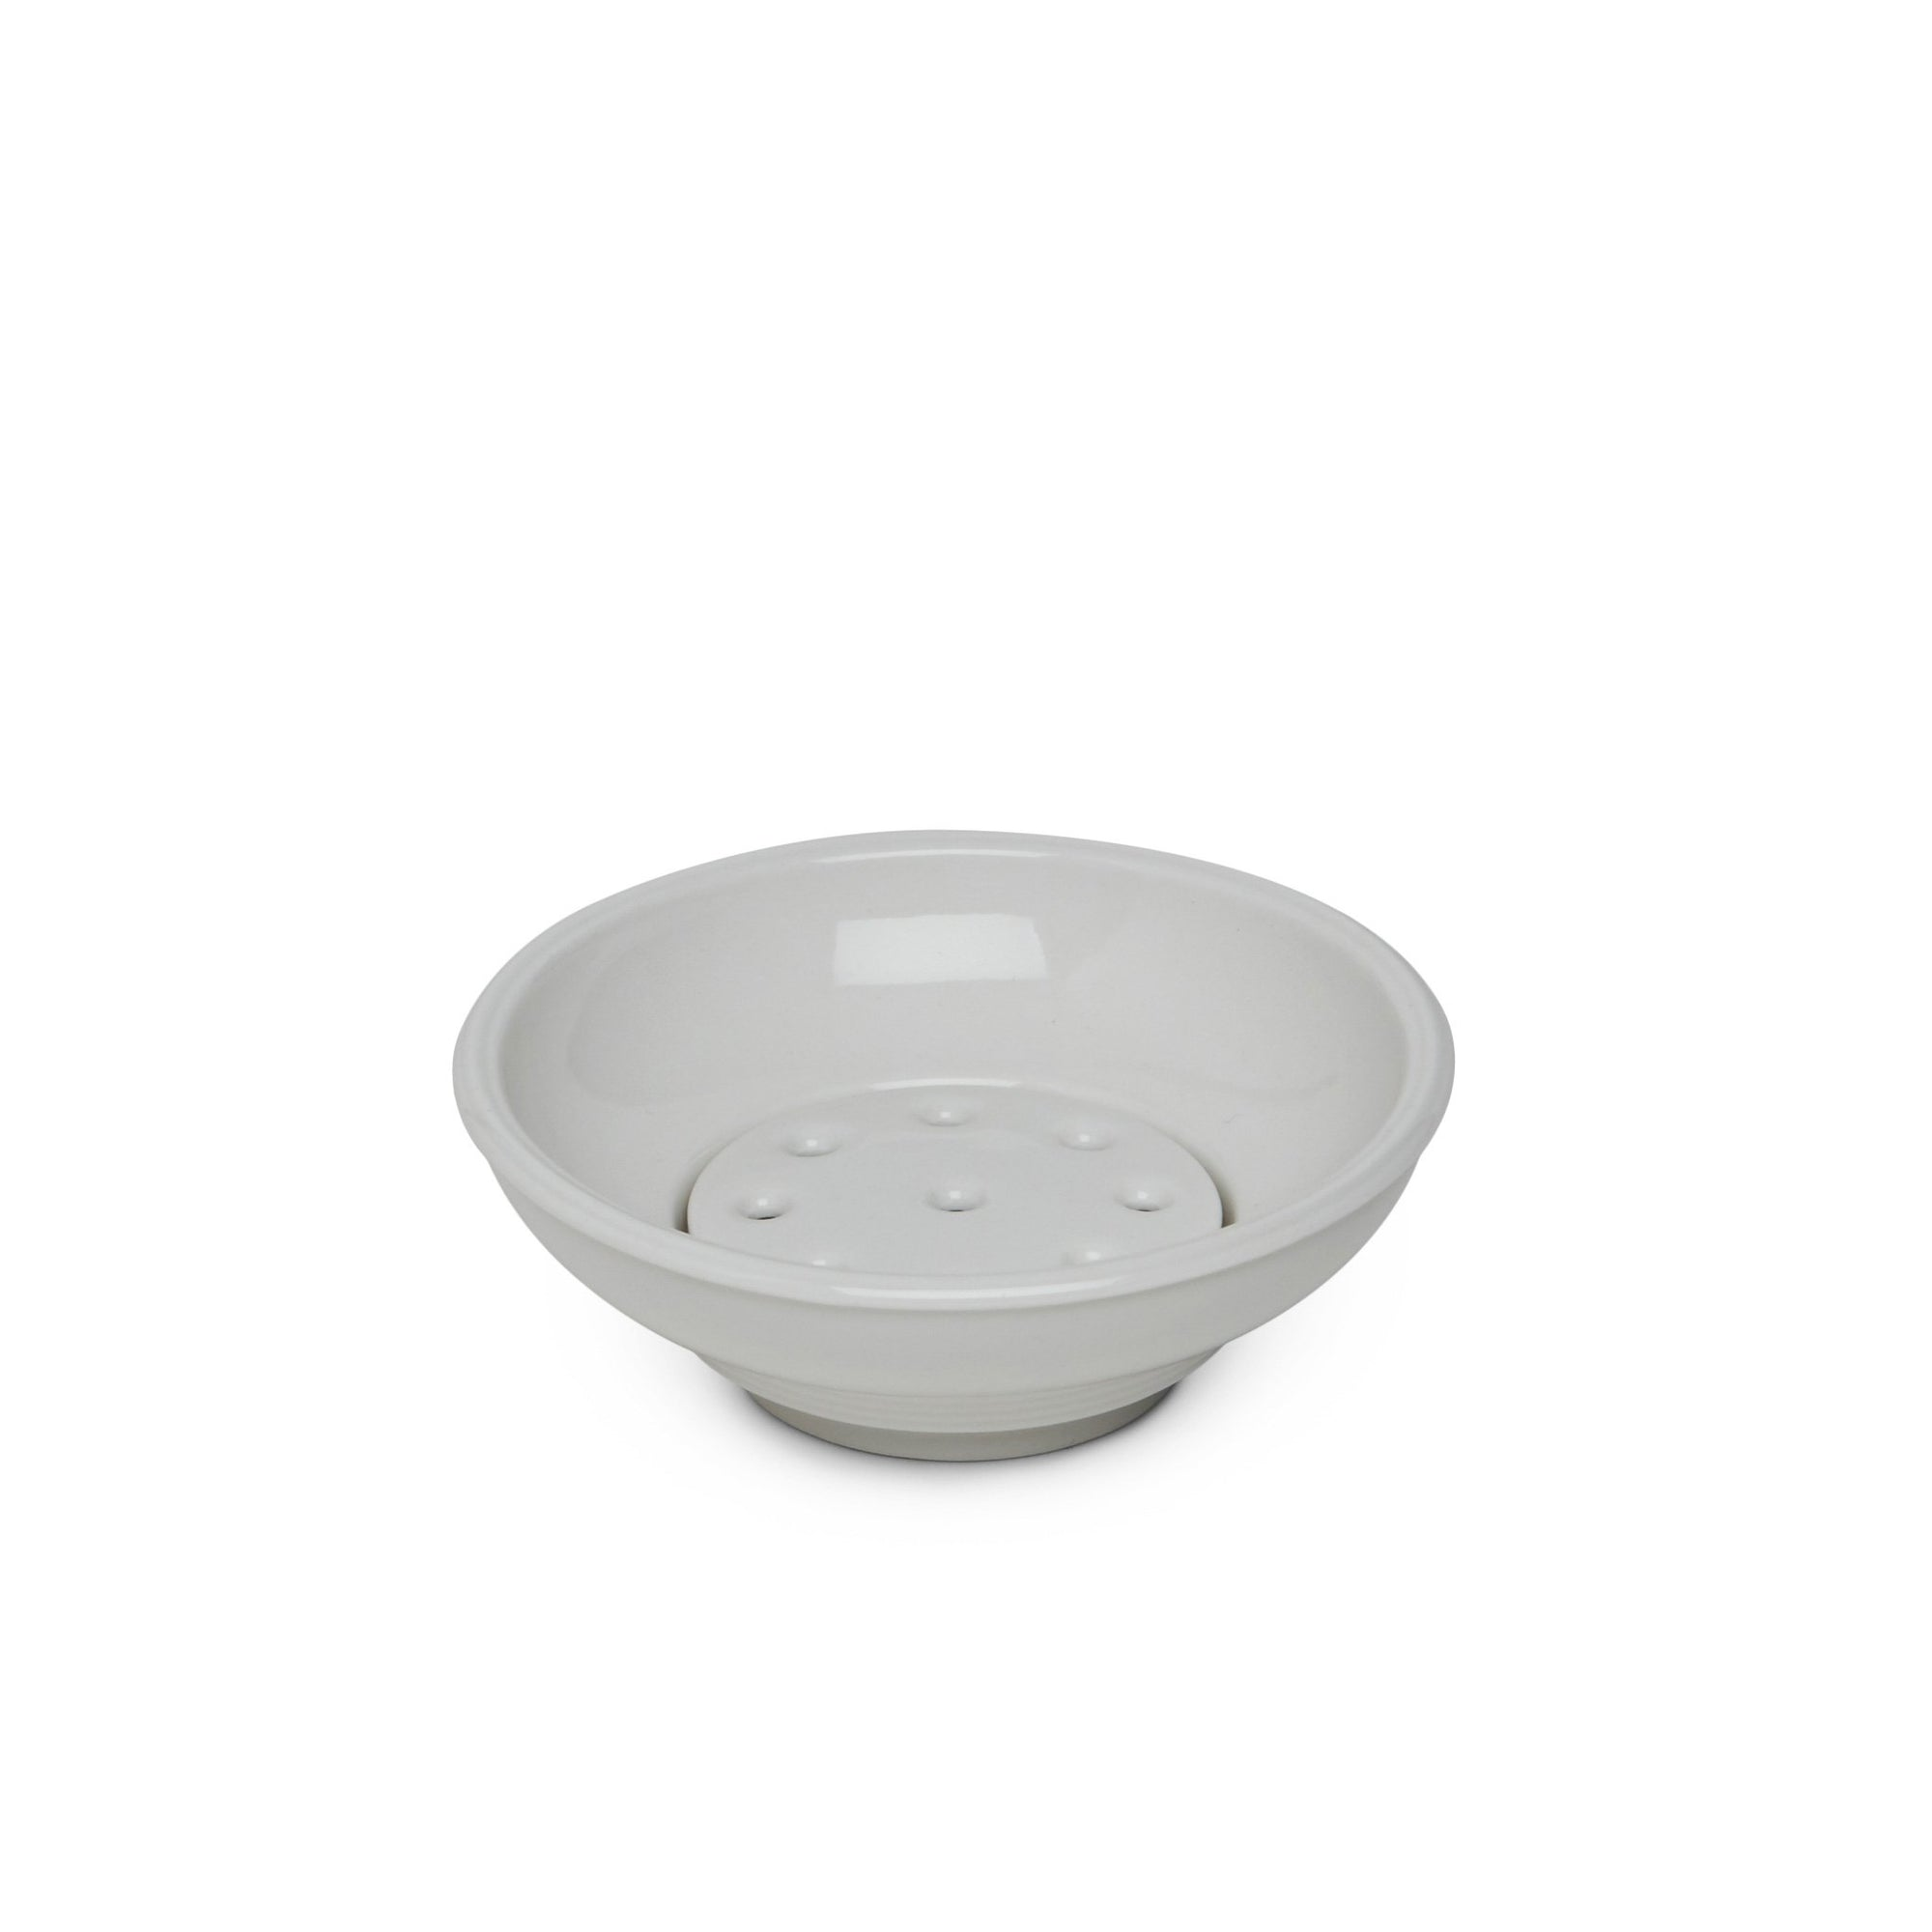 3399-WHT Sherle Wagner International Grey Ceramic Soap Dish in White